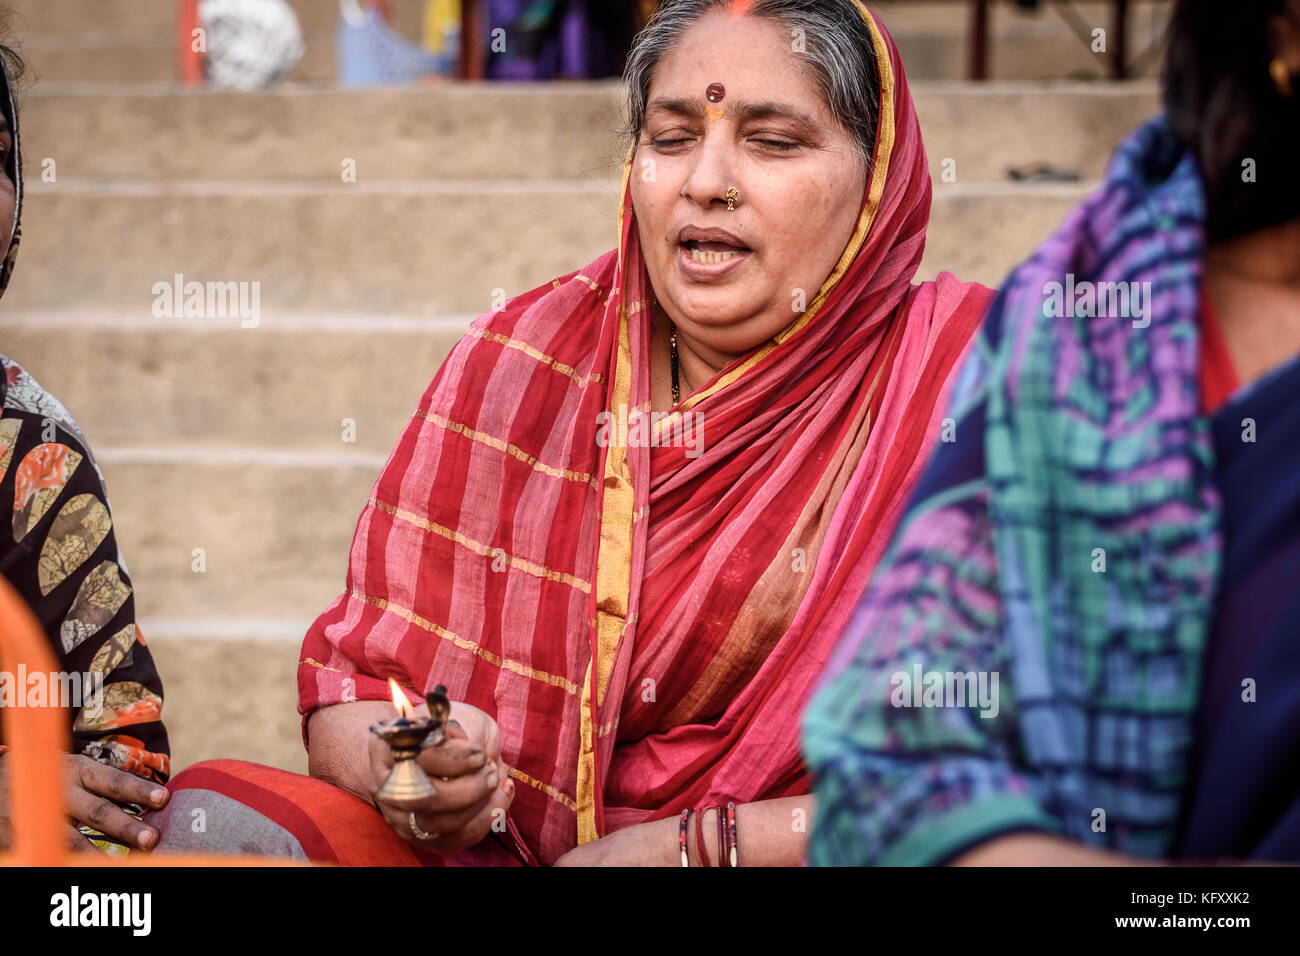 Hindu woman chanting and counting mantras for offering in